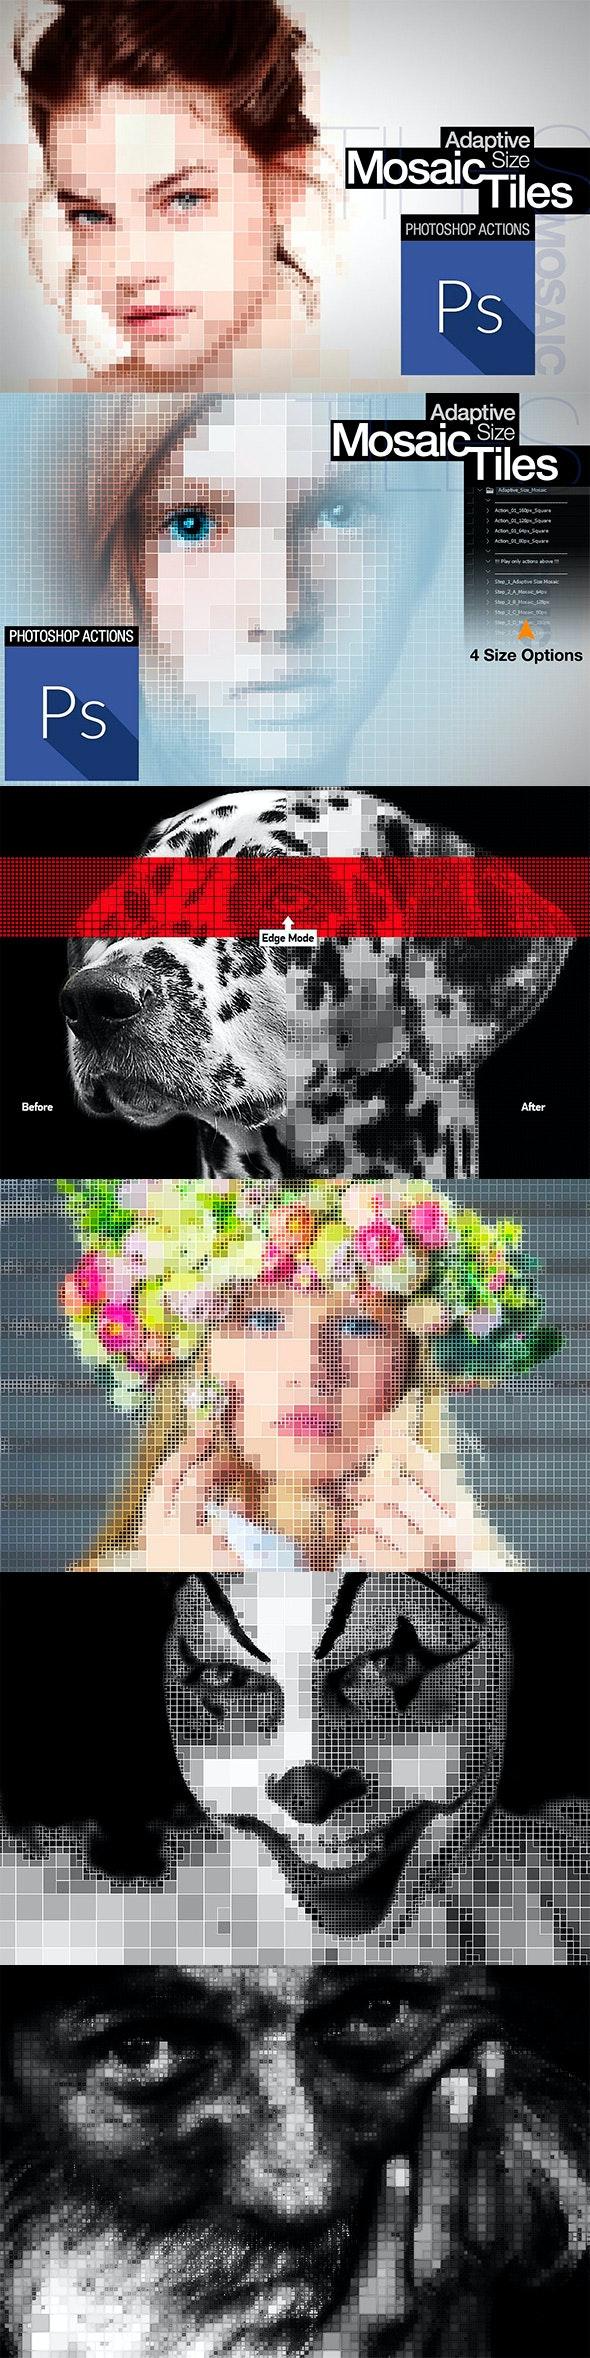 Adaptive Size Mosaic Tiles Photoshop Actions - Photo Effects Actions